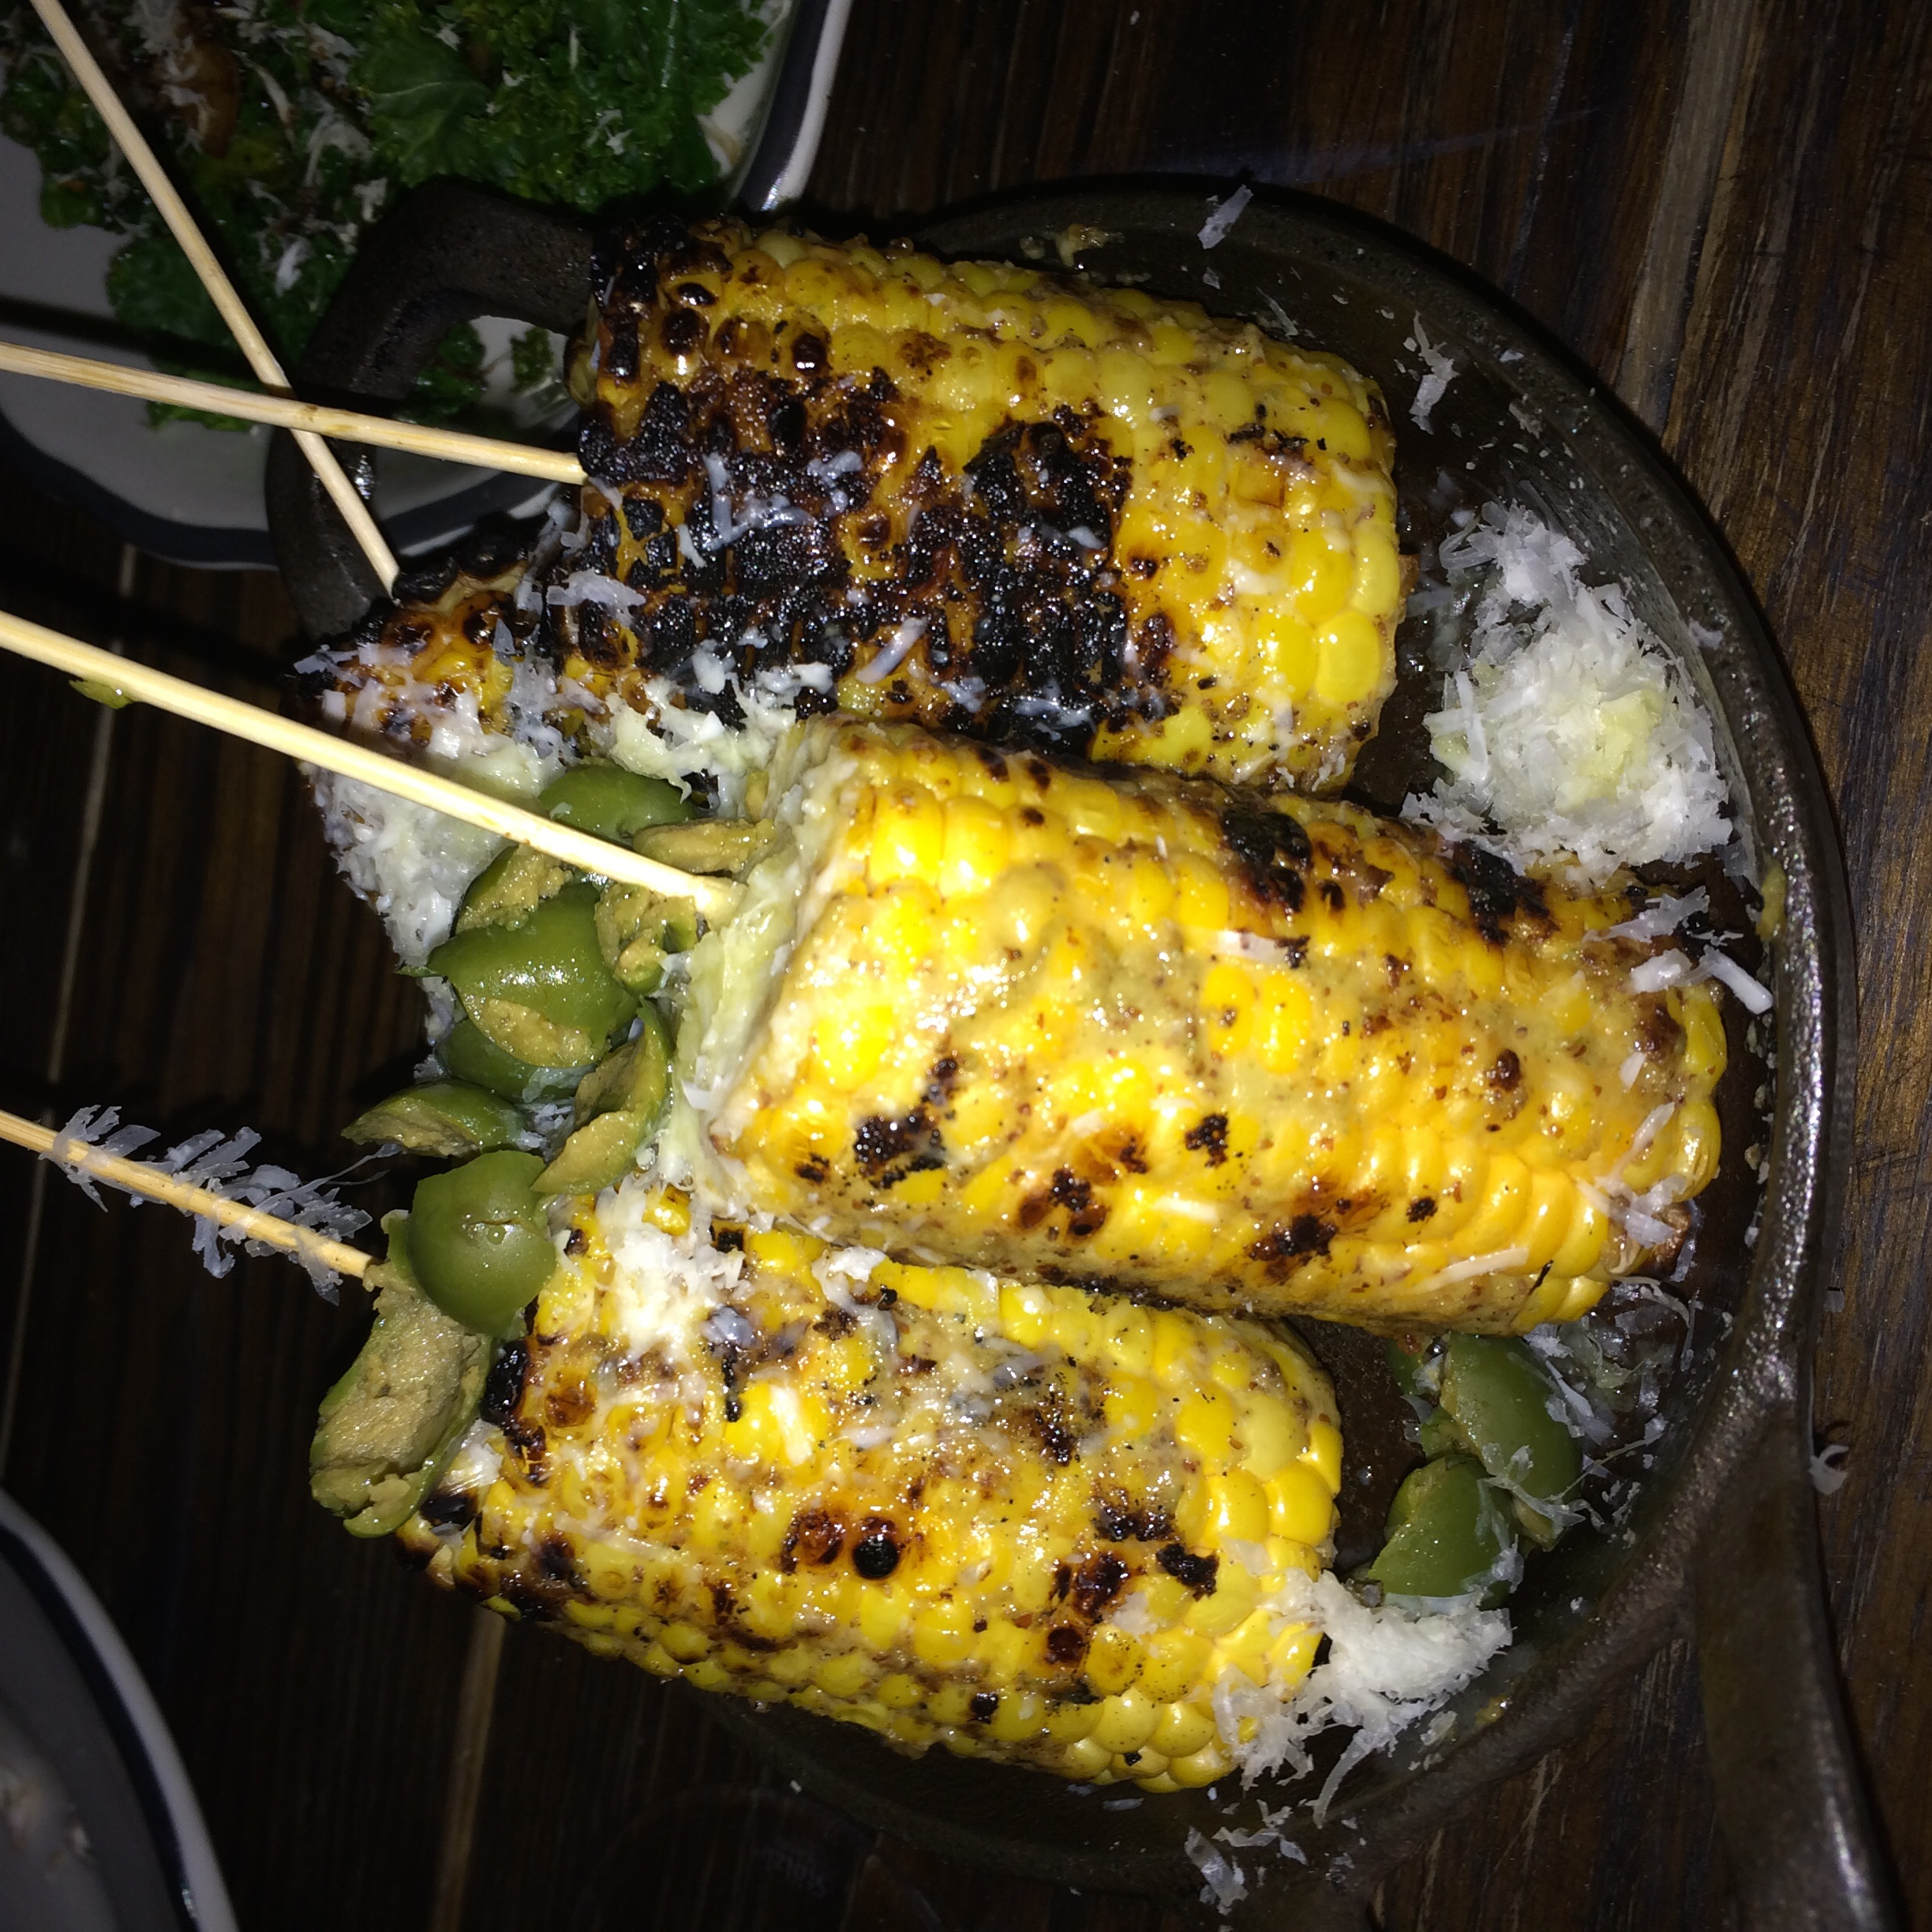 Corn on the cob with jalapeño  CORN ON THE COB - HUITLACOCHE, JALAPEÑO, COTIJA